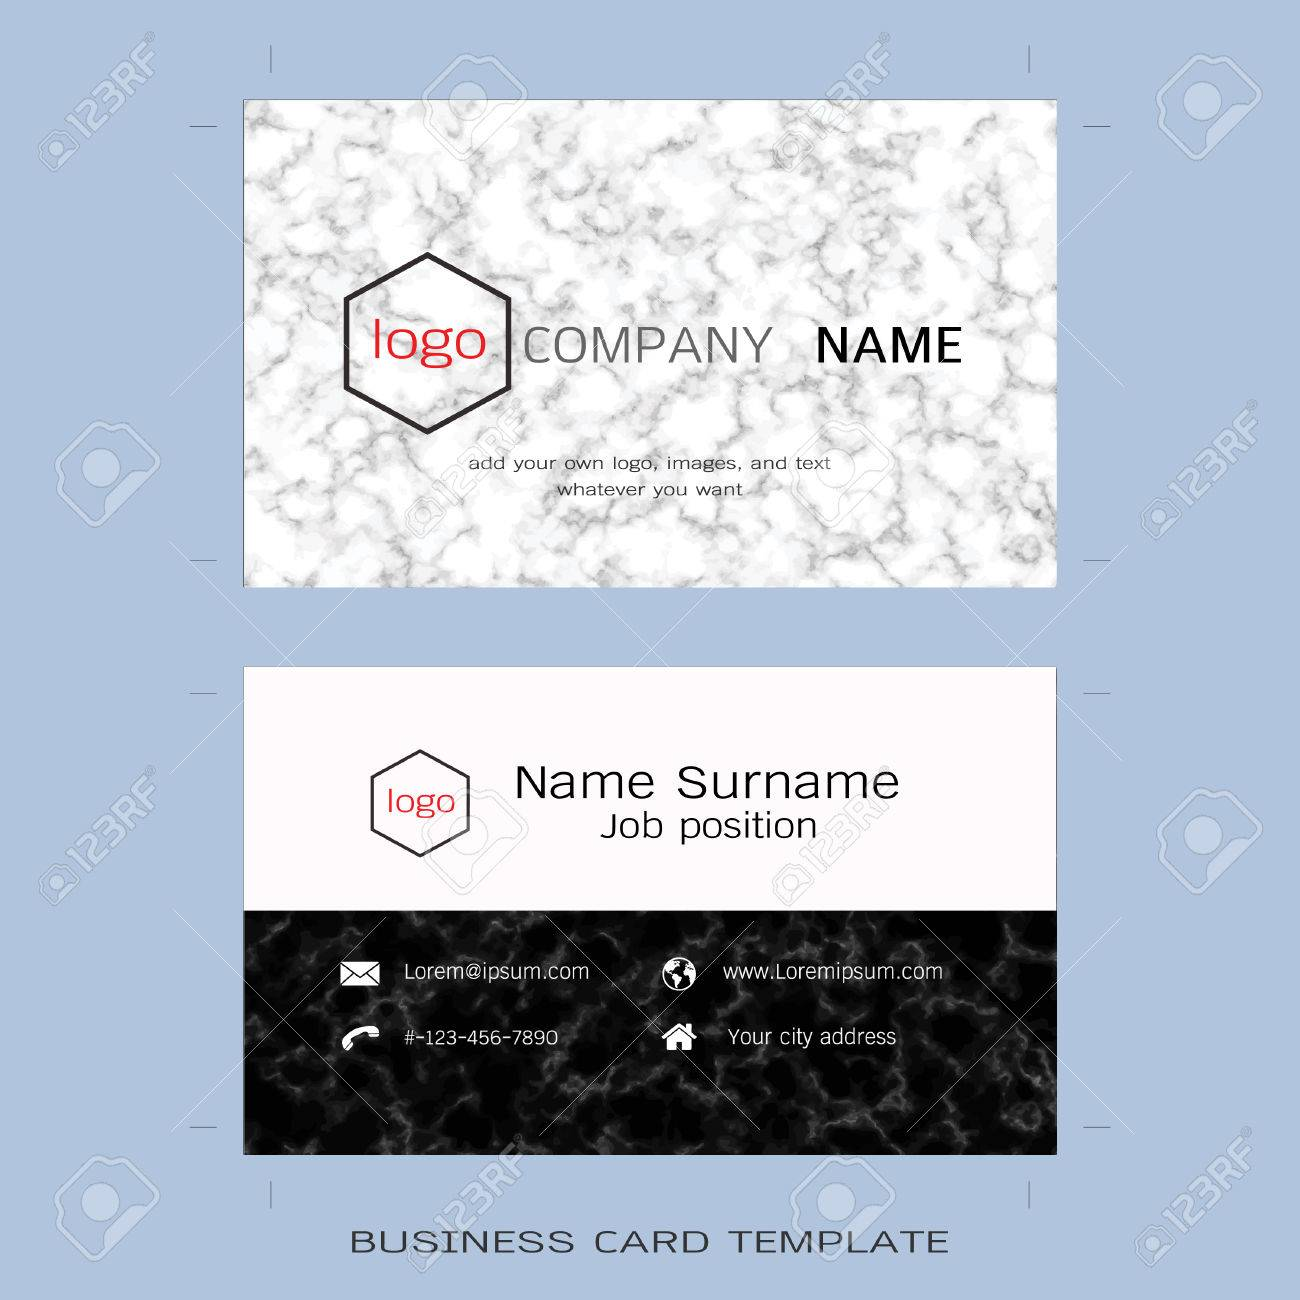 Modern designer business card layout templates marble texture modern designer business card layout templates marble texture background easy to use by print alramifo Images